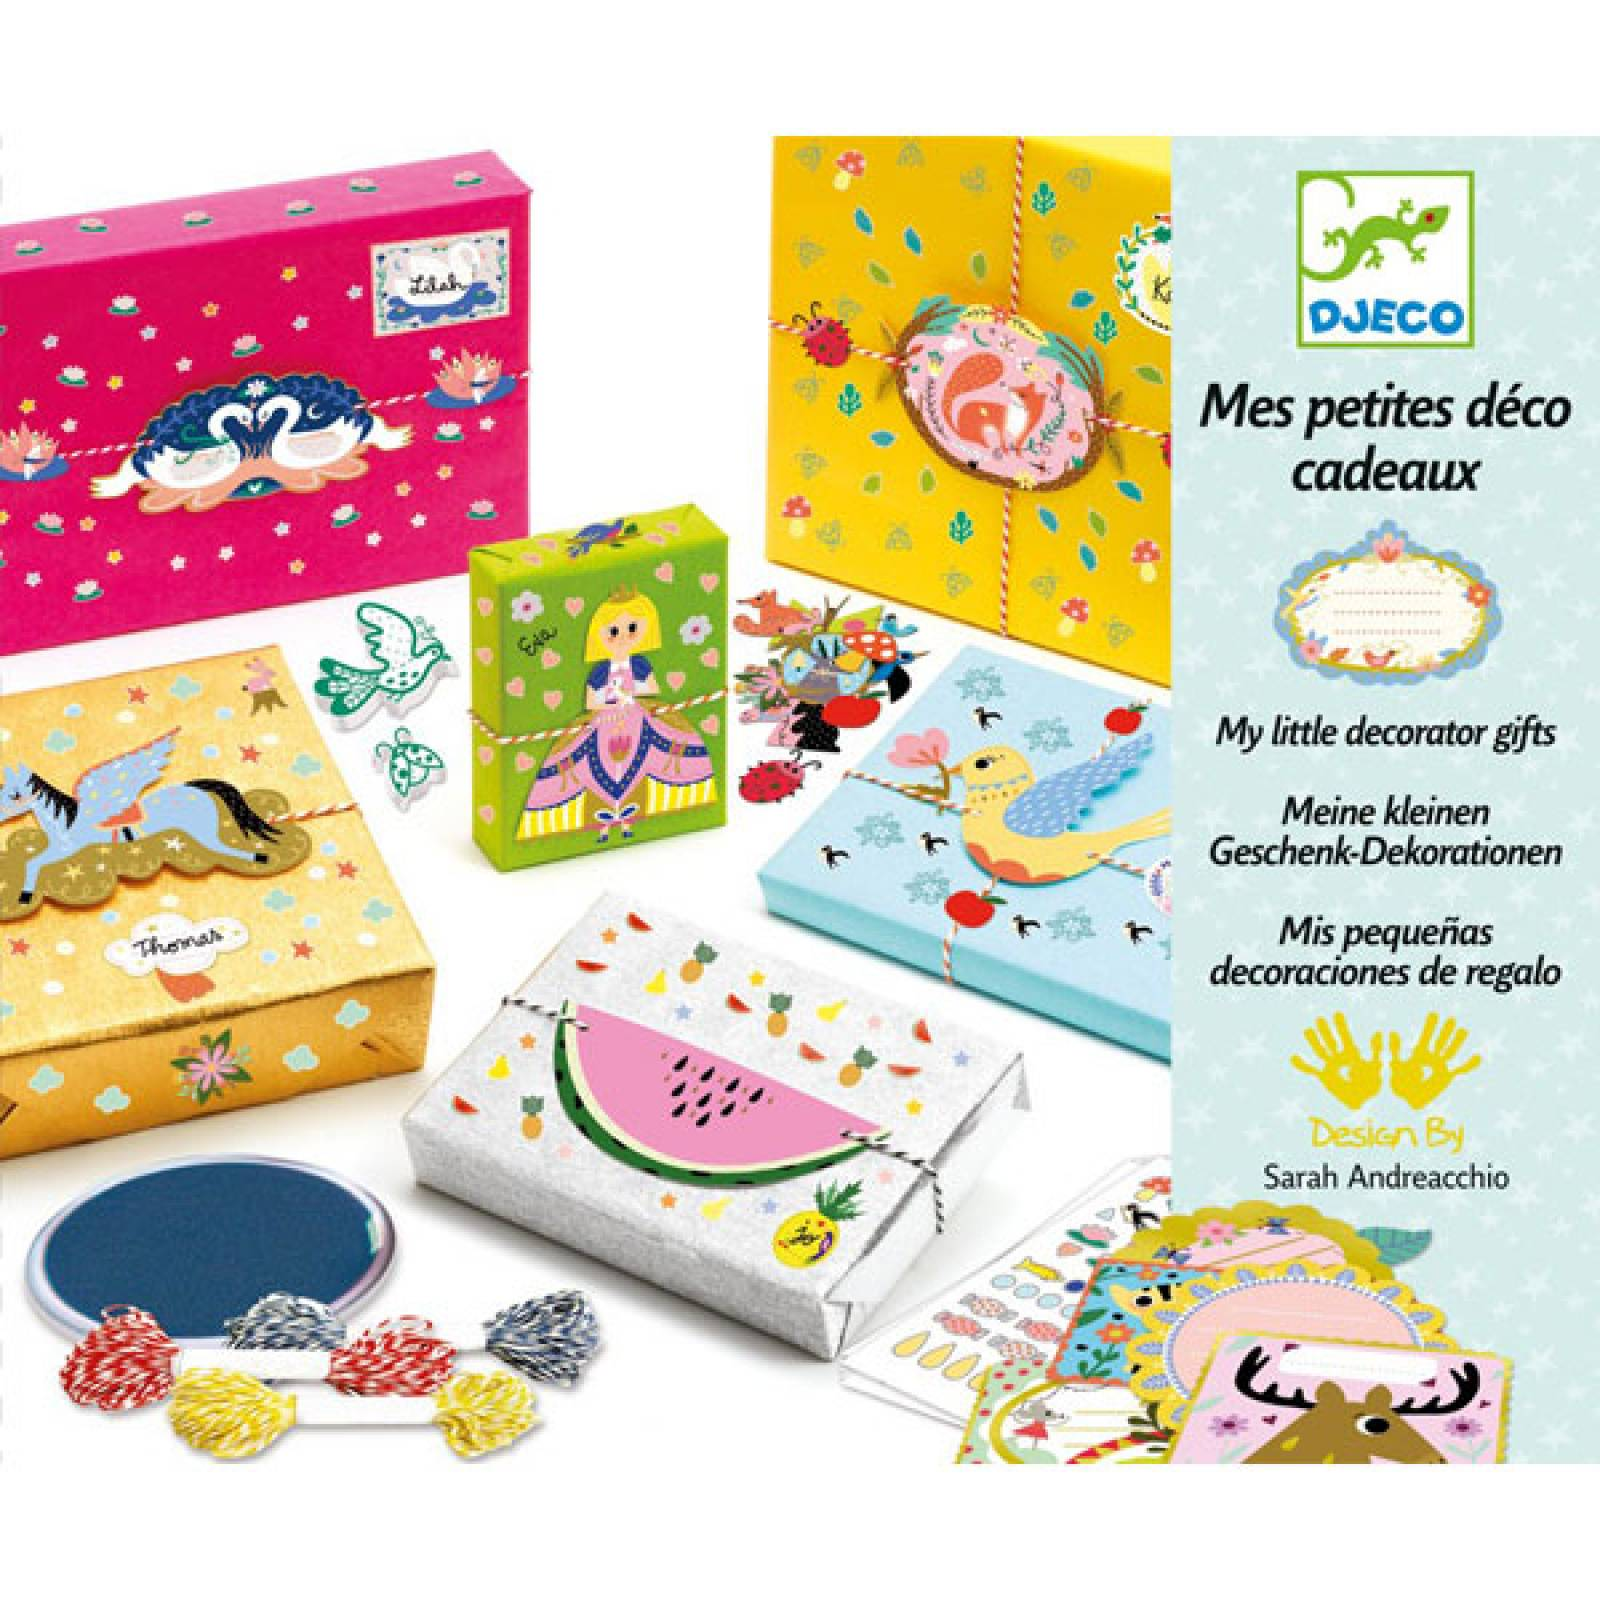 My Little Decorator Gifts Craft Kit By Djeco 7-13yrs